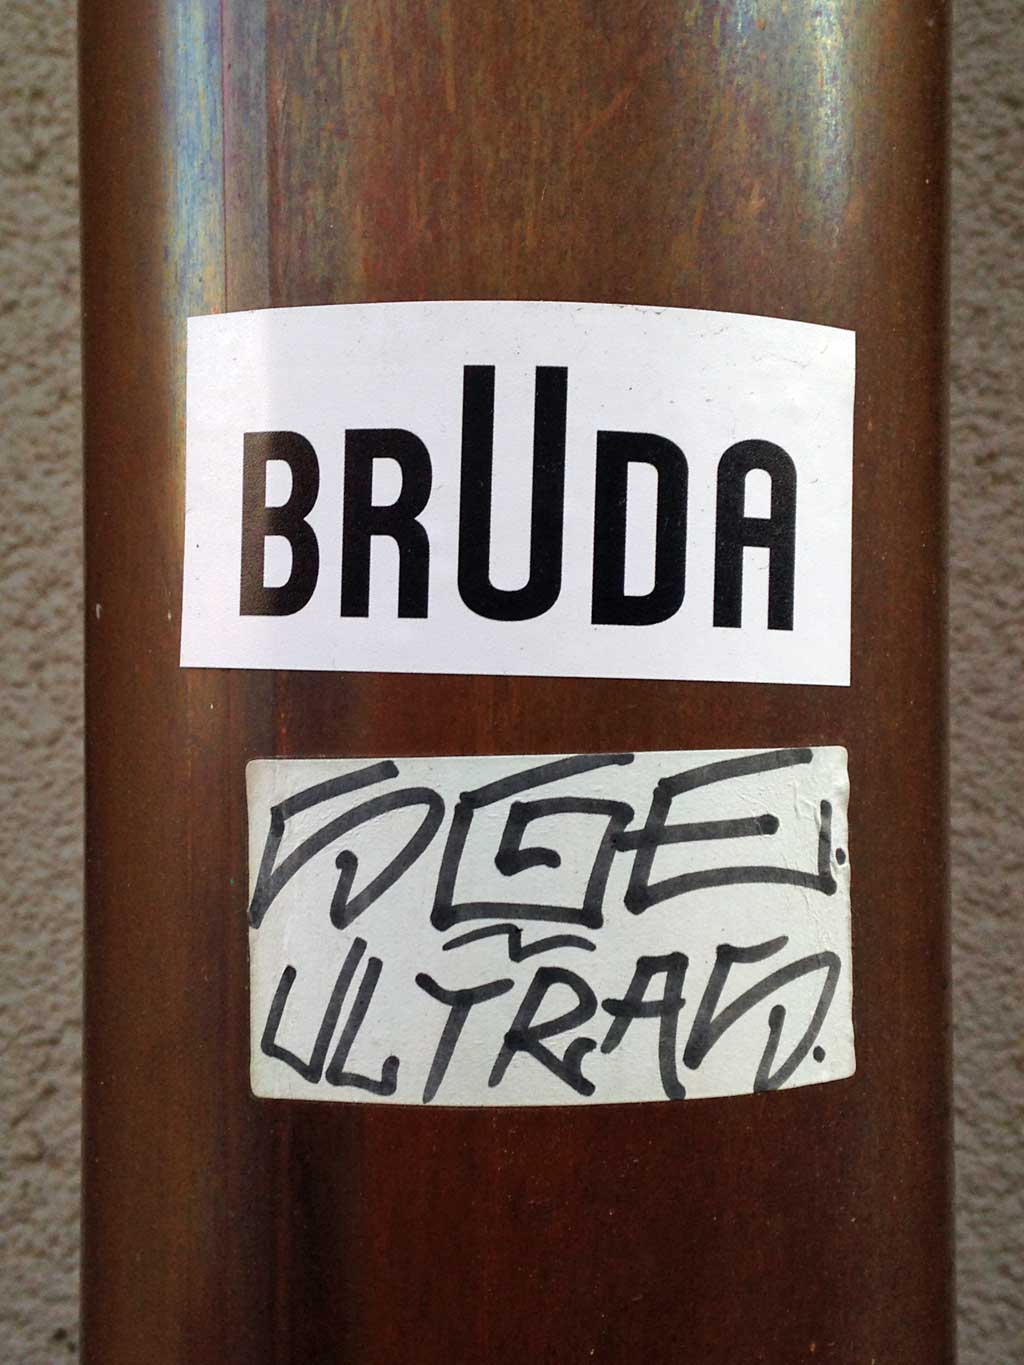 Sticker Art - Bruda